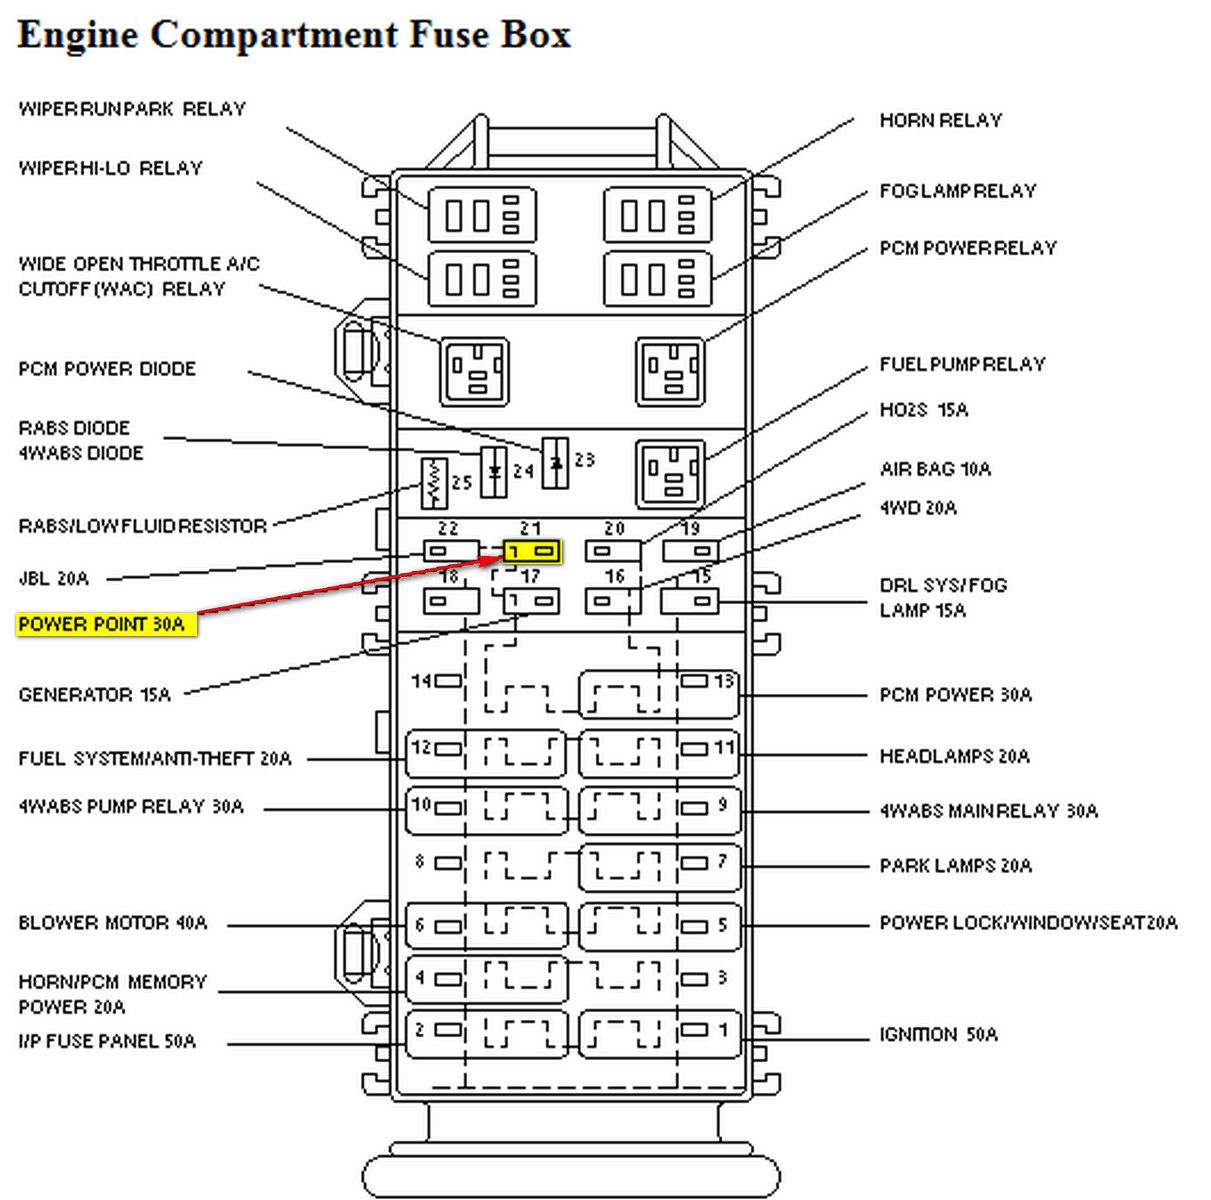 medium resolution of 97 f250 fuse panel diagram wiring diagram schematics 1997 explorer wont shift into 4wd 1997 explorer fuse panel diagram